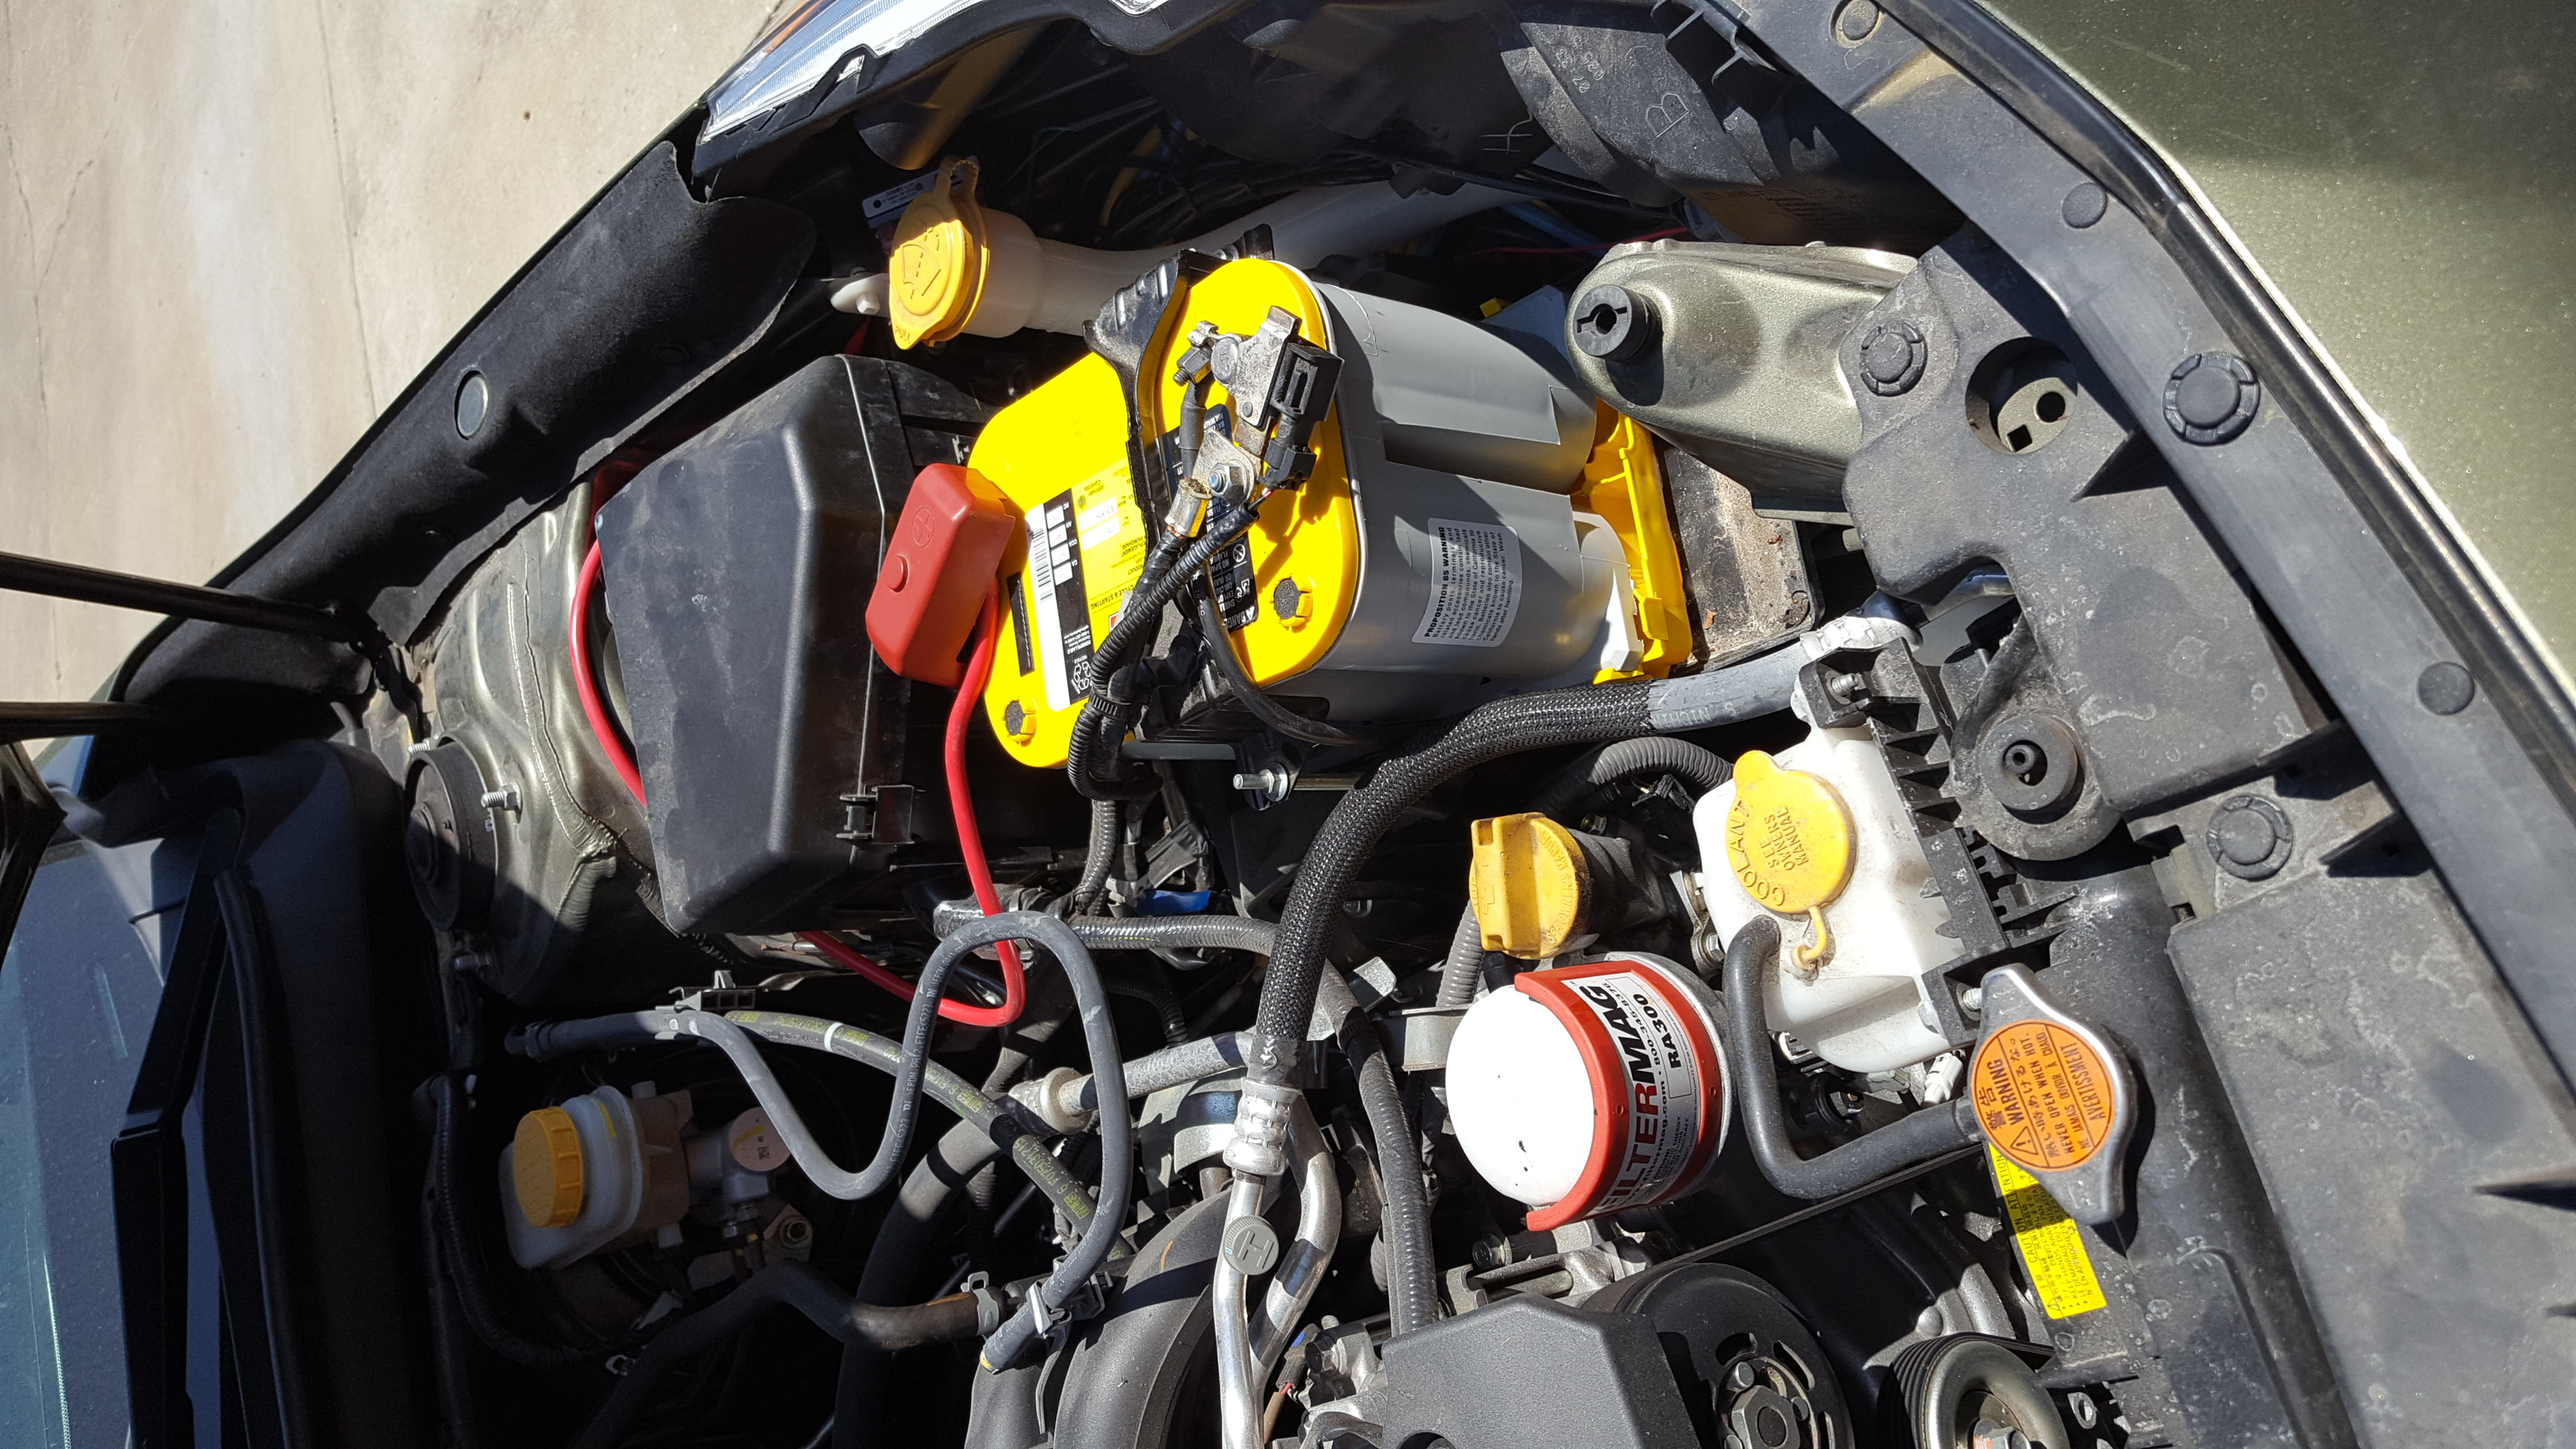 Yellow Top Optima Battery >> Why group 34 battery and not 24? - Page 11 - Subaru ...